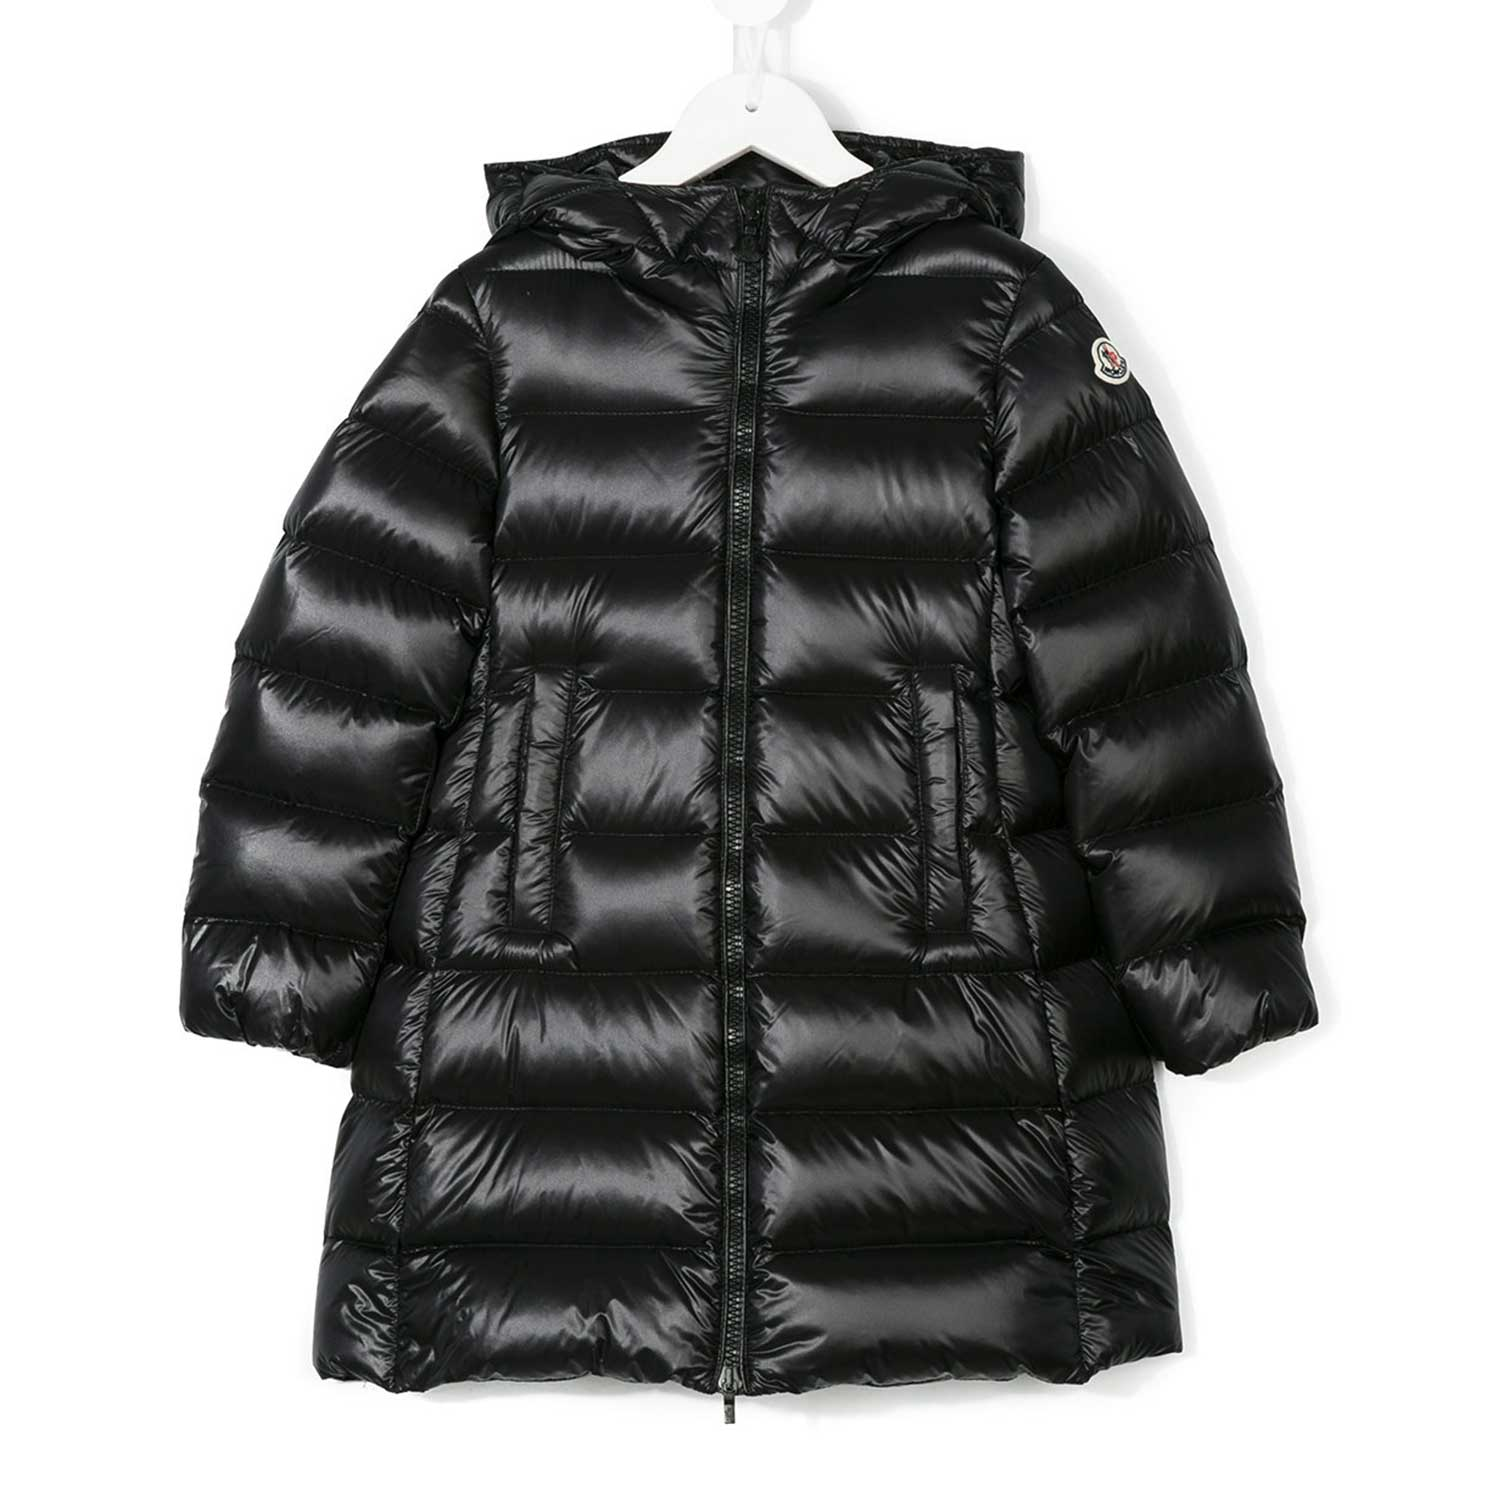 Moncler piumino nero bambina teen shop for Piumino letto bambina